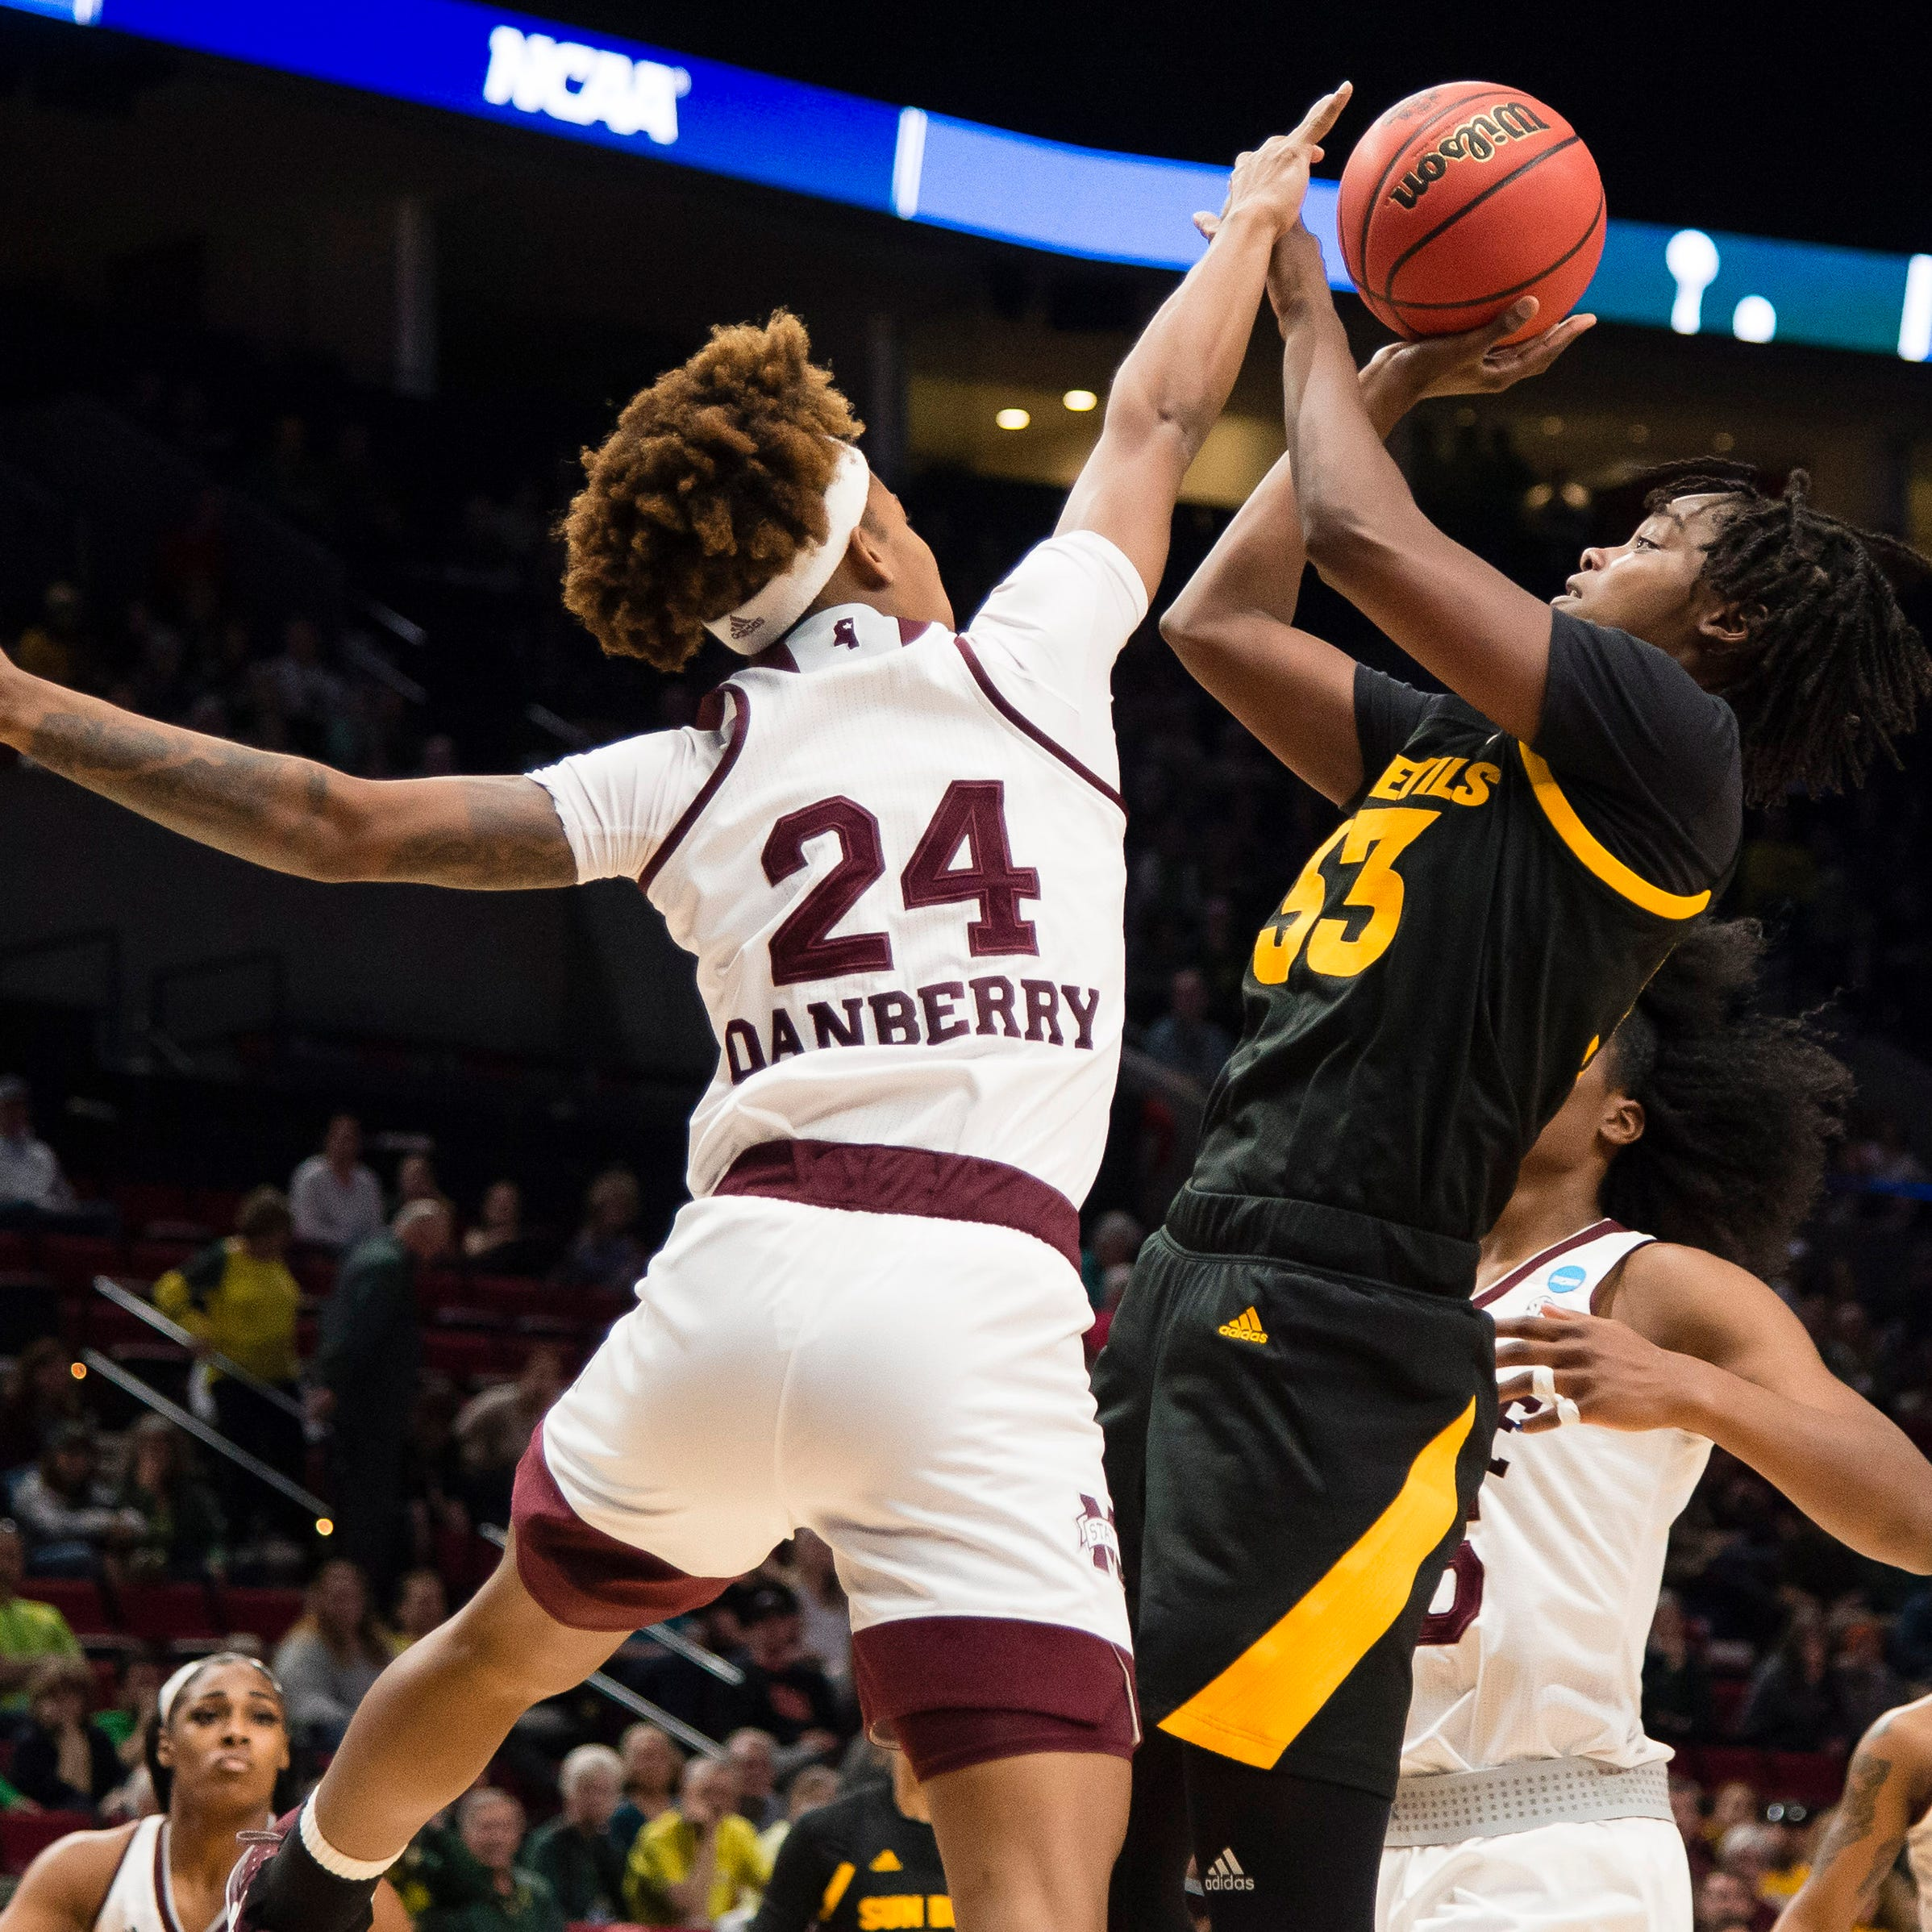 Fouls costly for No. 22 ASU women's basketball in Sweet 16 loss to No. 4 Mississippi State